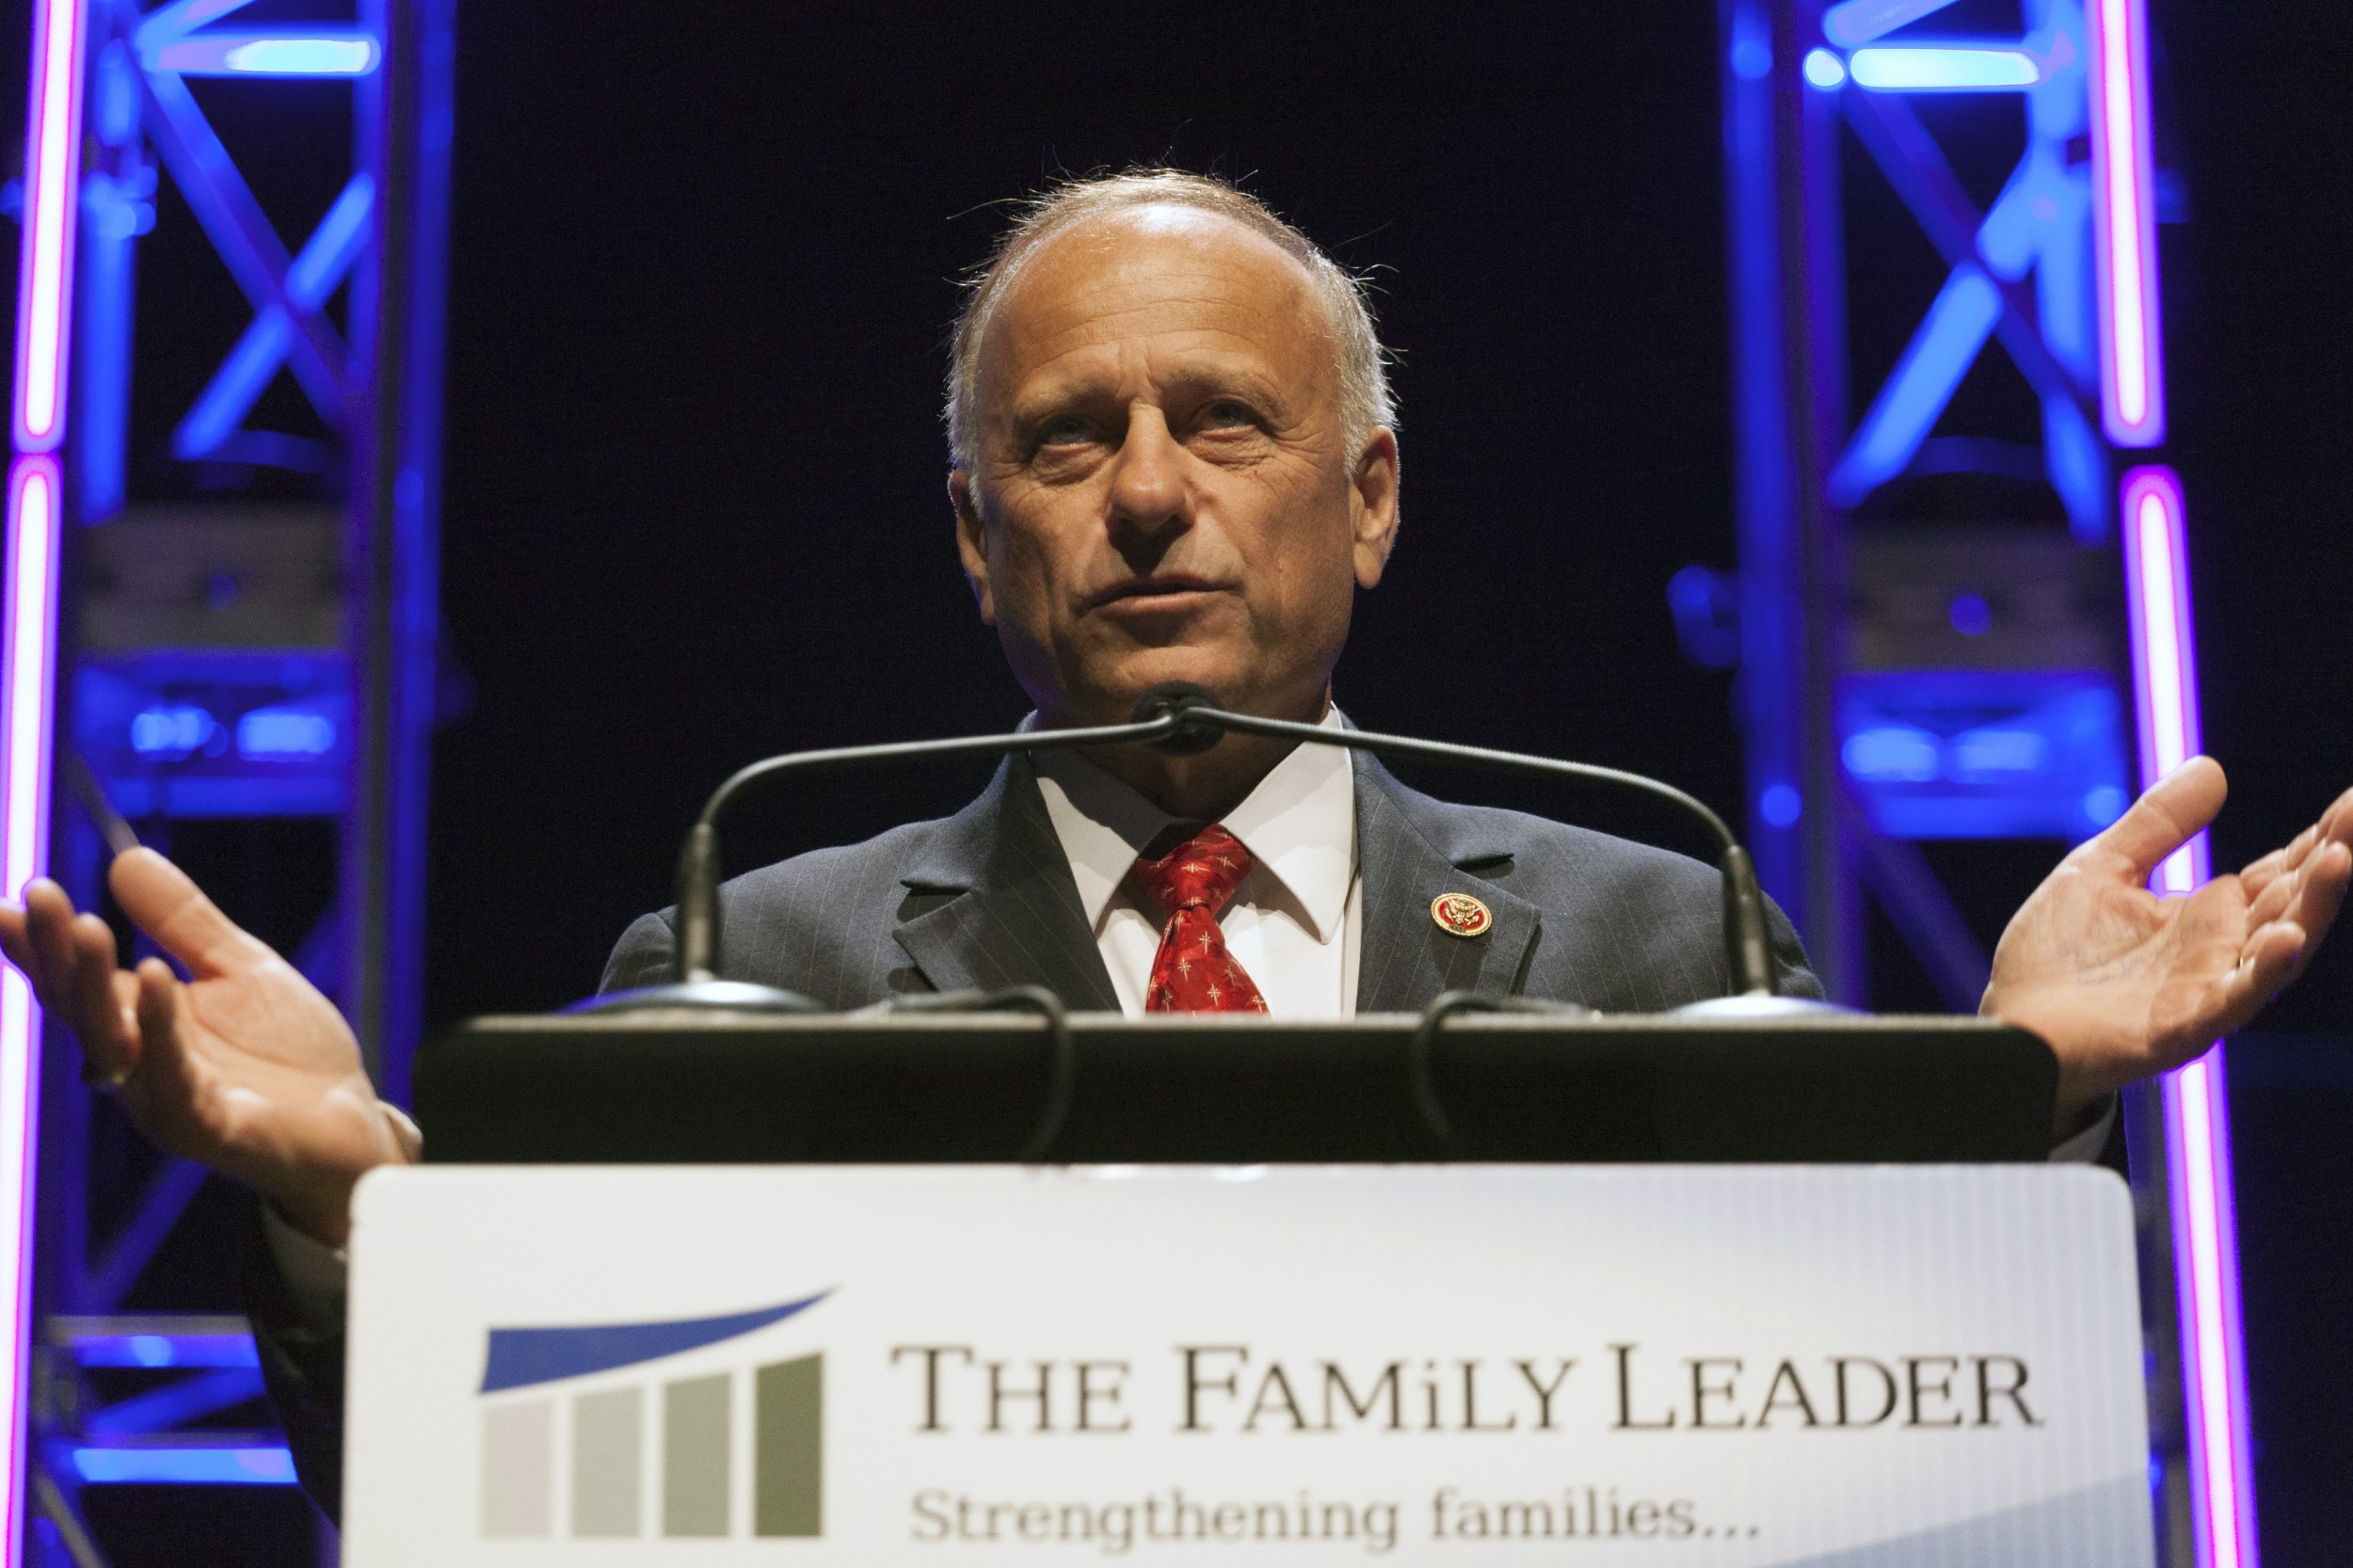 Congressman Steve King speaks at the Family Leadership Summit in Ames, Iowa August 9, 2014.